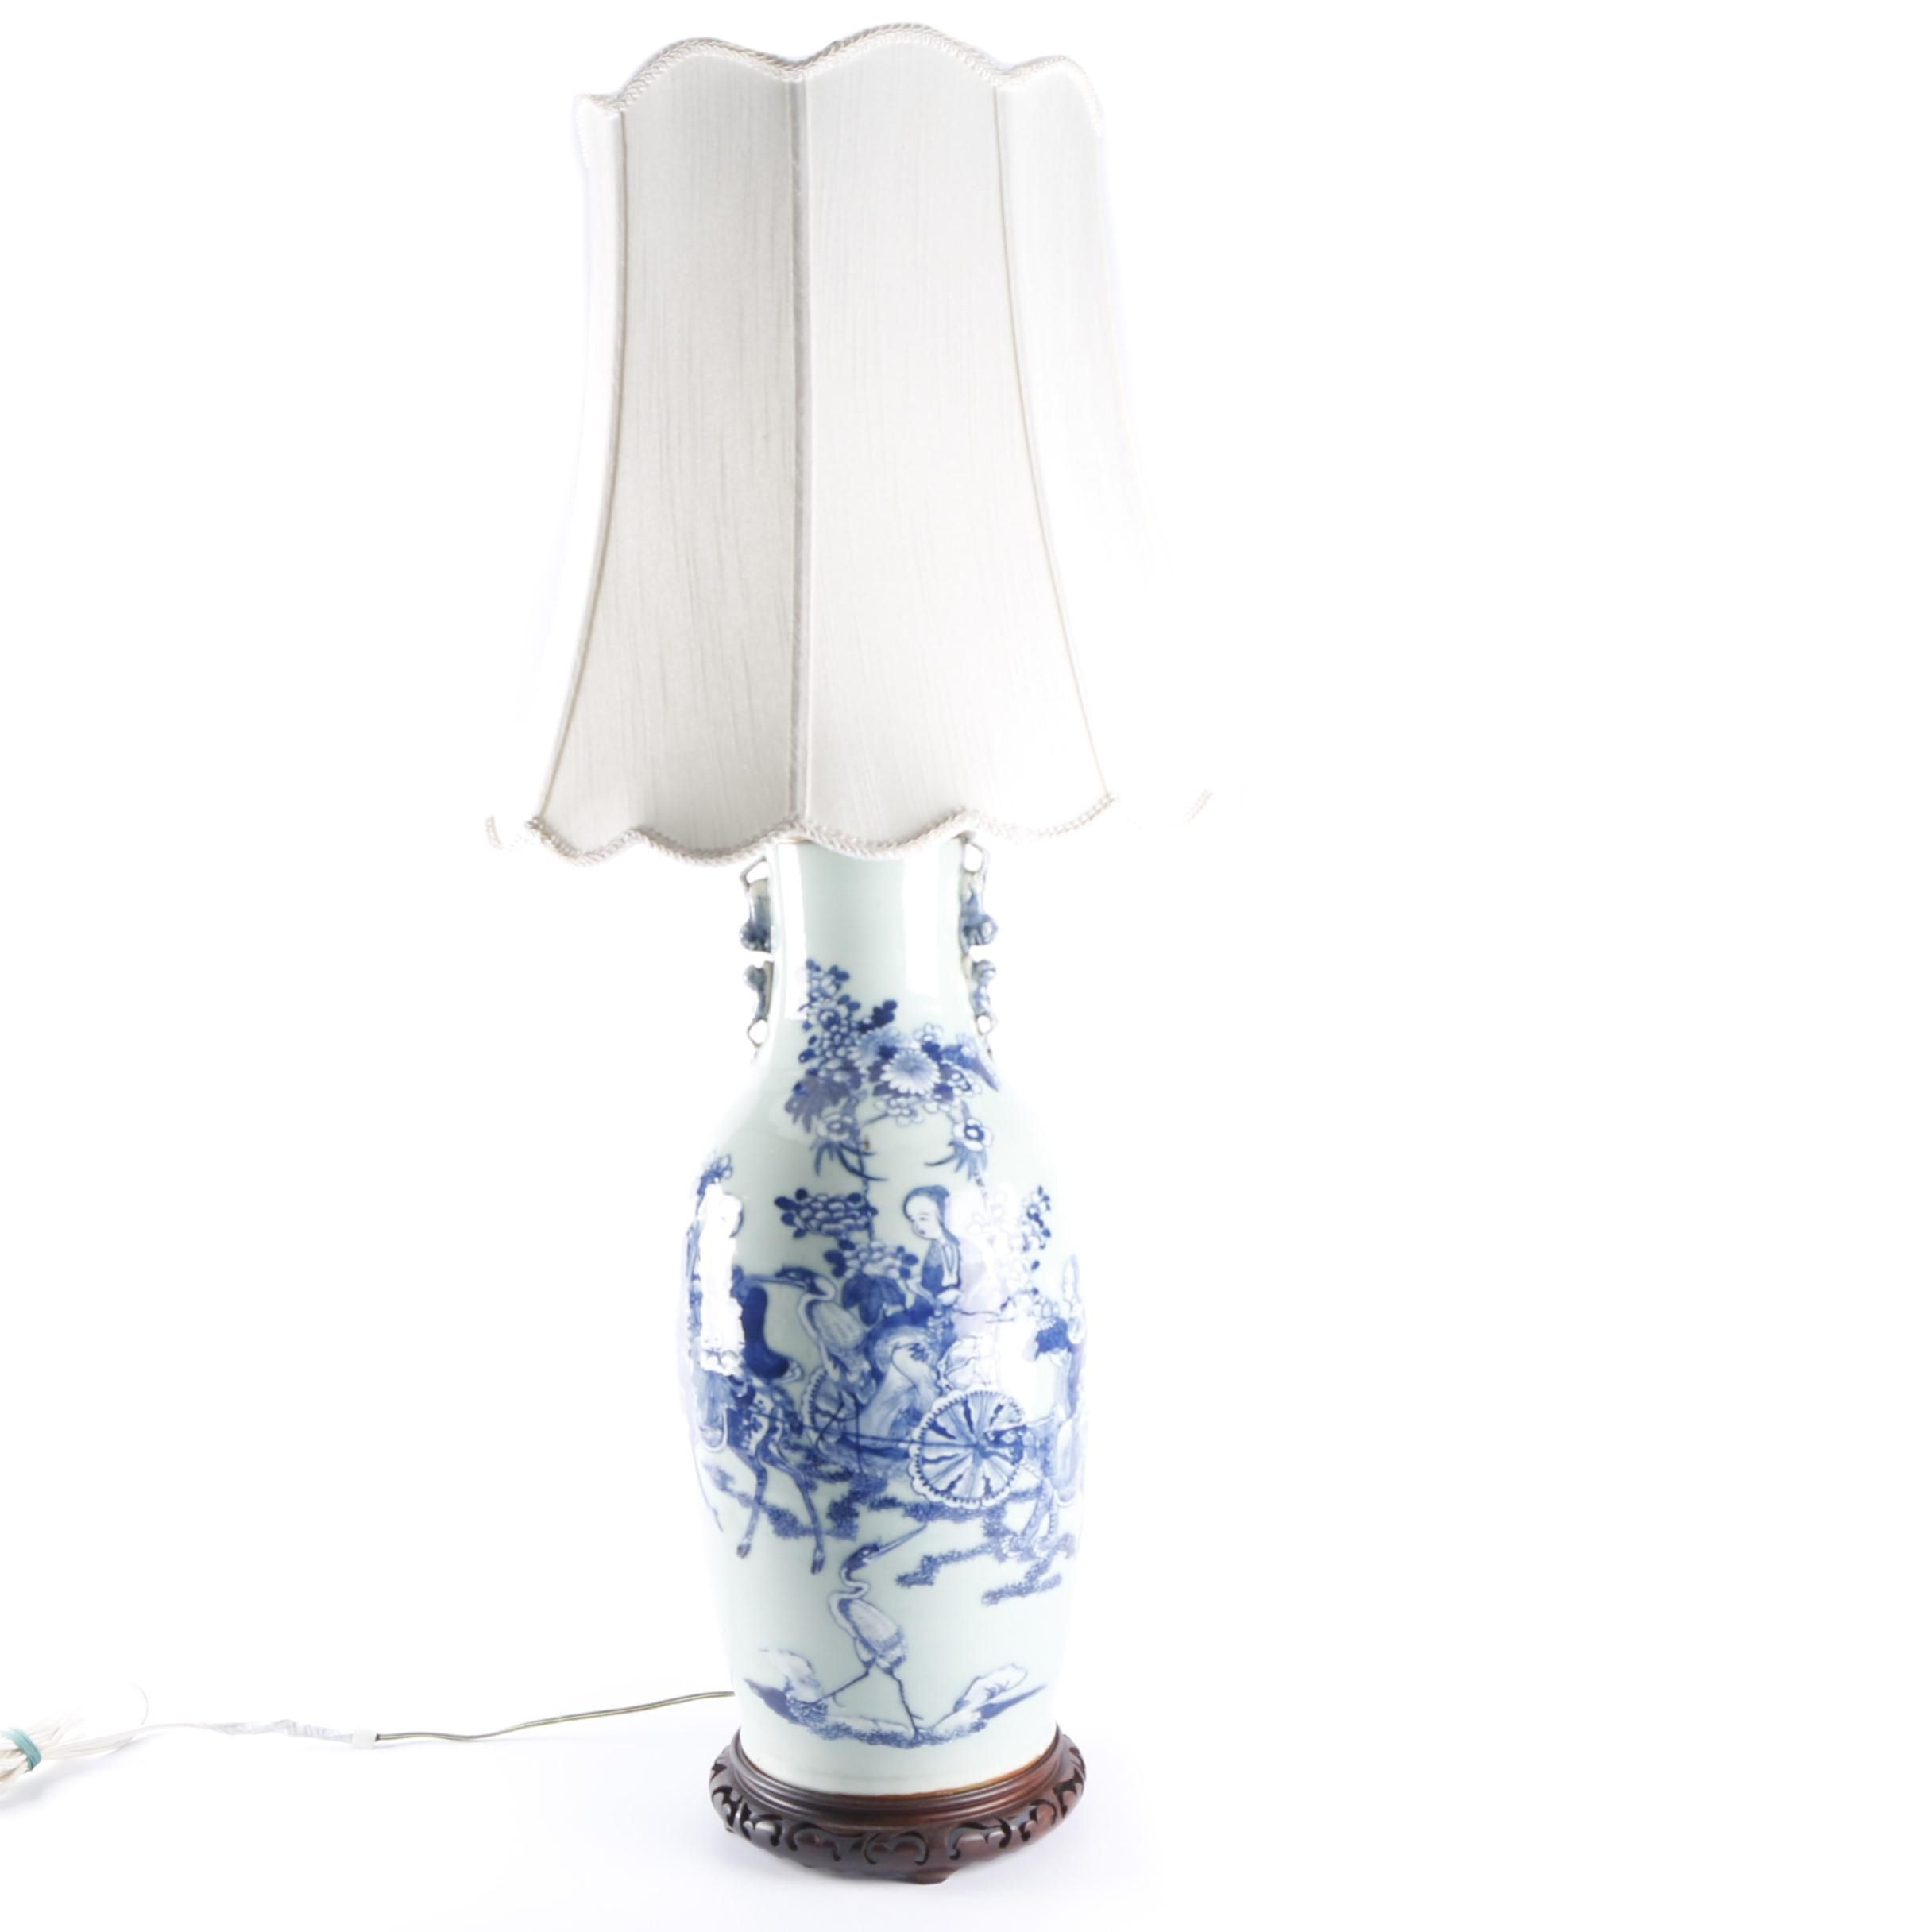 Chinese Blue and White Hand-Painted Vase Table Lamp with Fabric Shade